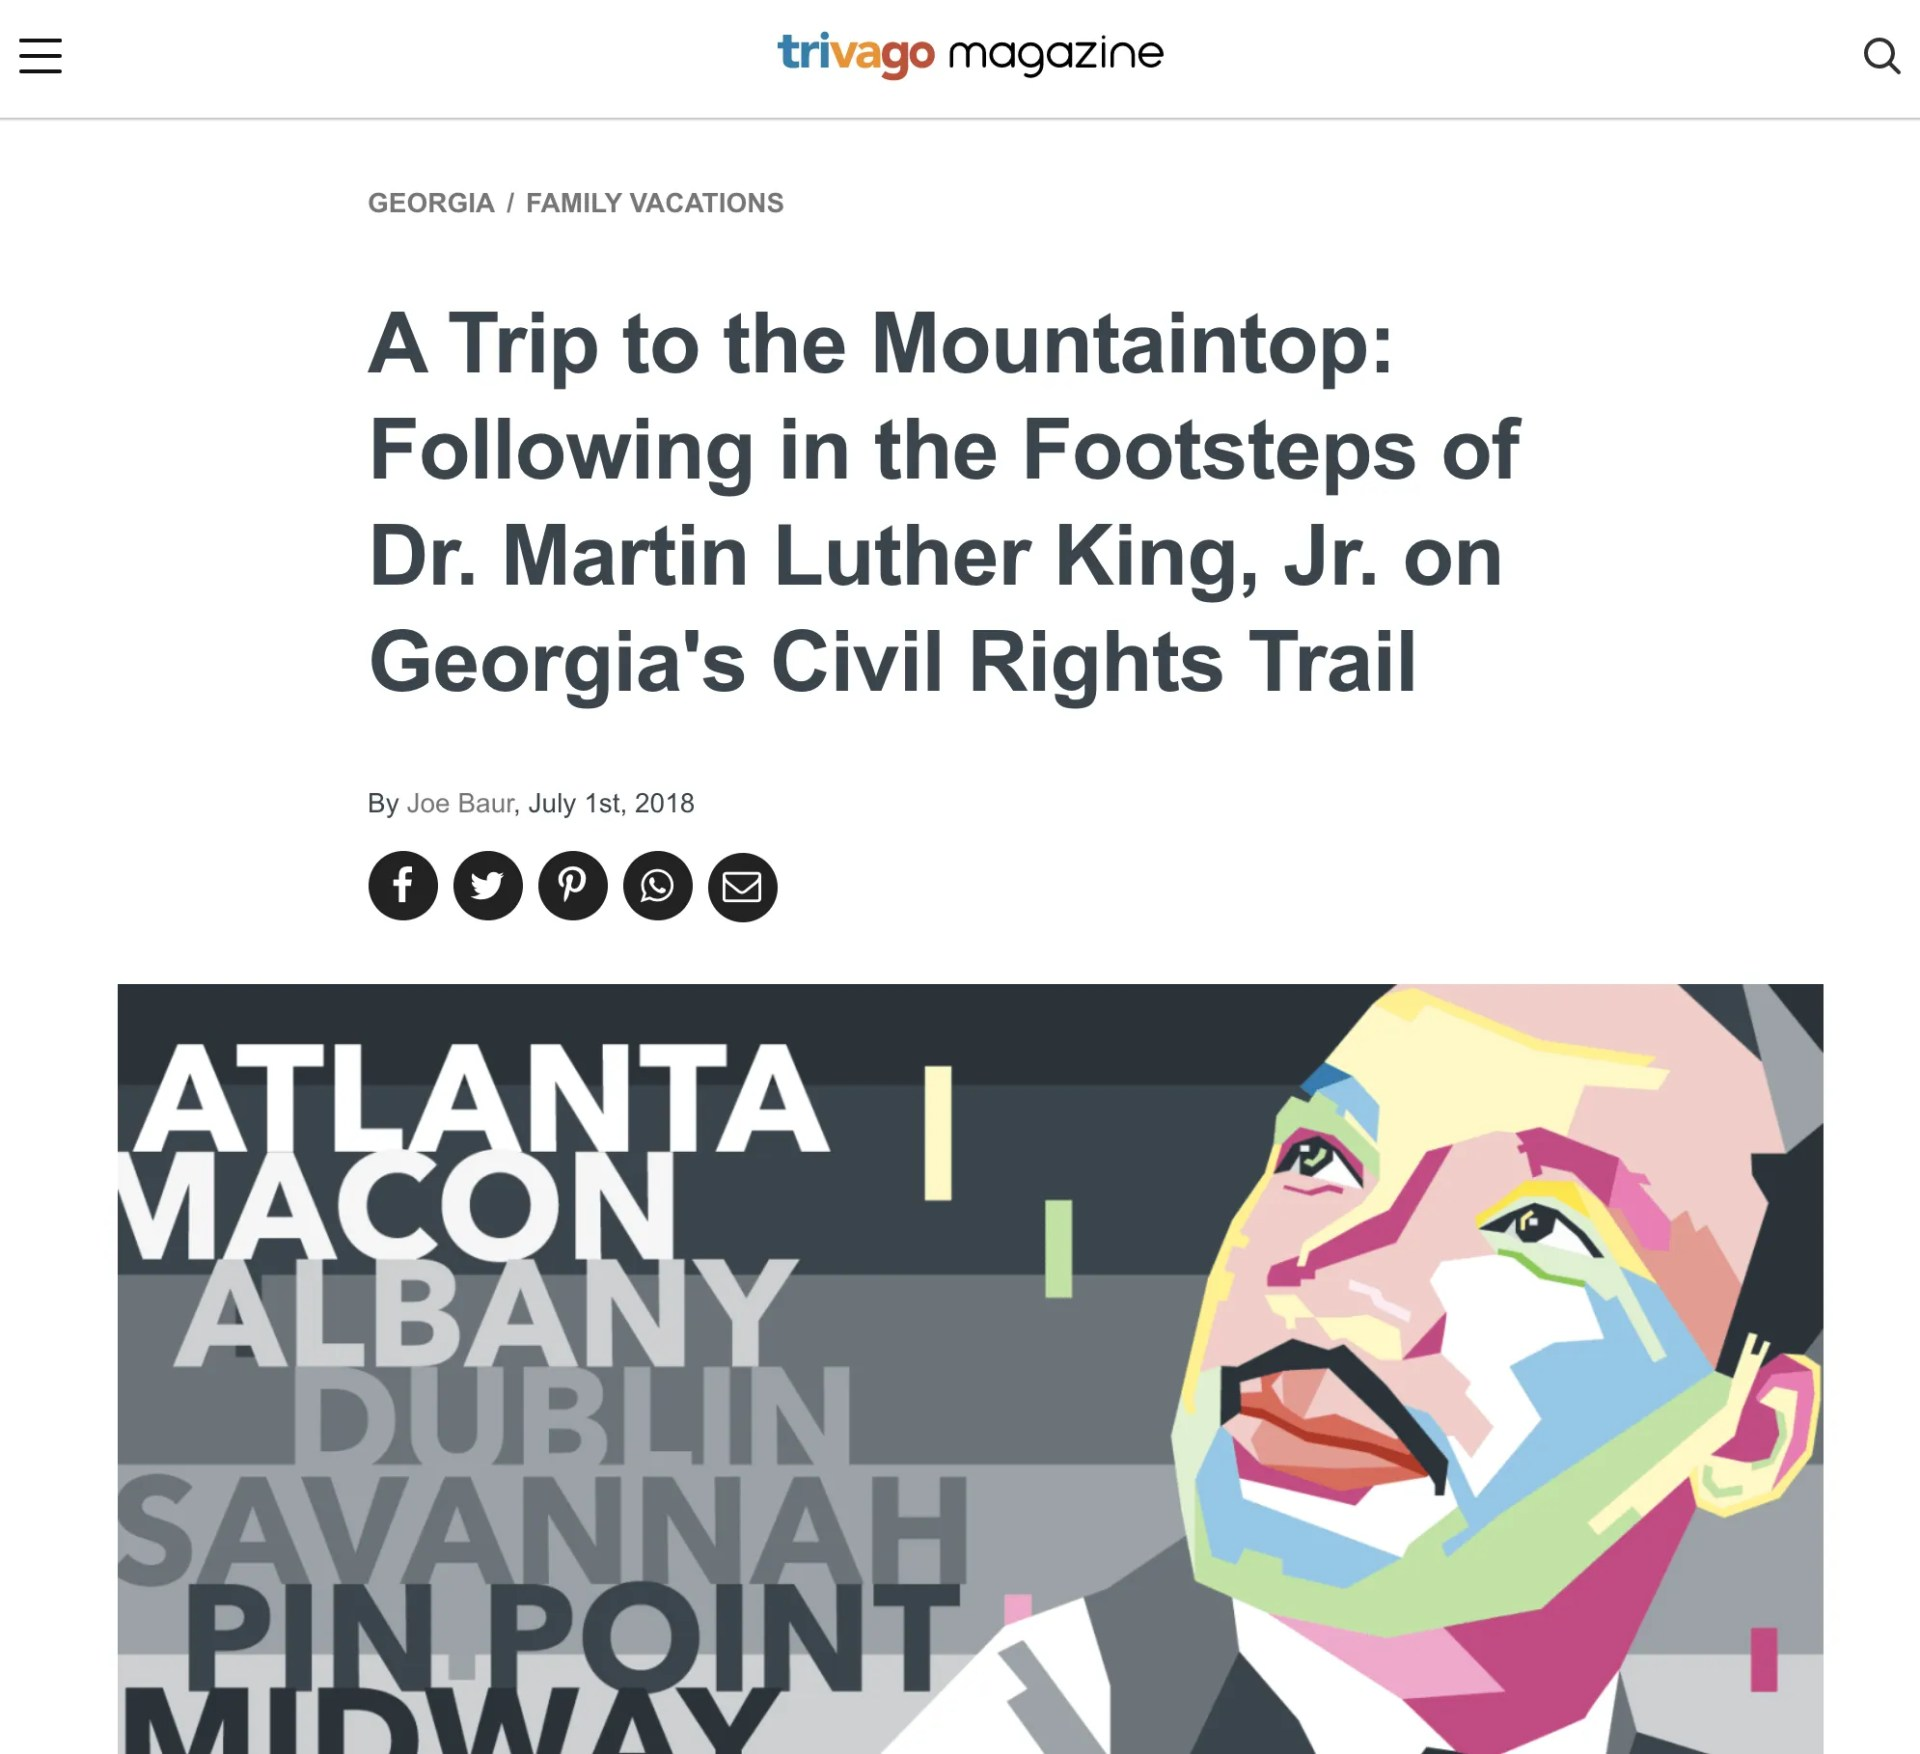 A Trip to the Mountaintop - Following in the Footsteps of Dr. Martin Luther King, Jr on Georgia's Civil Rights Trail - trivago Magazine